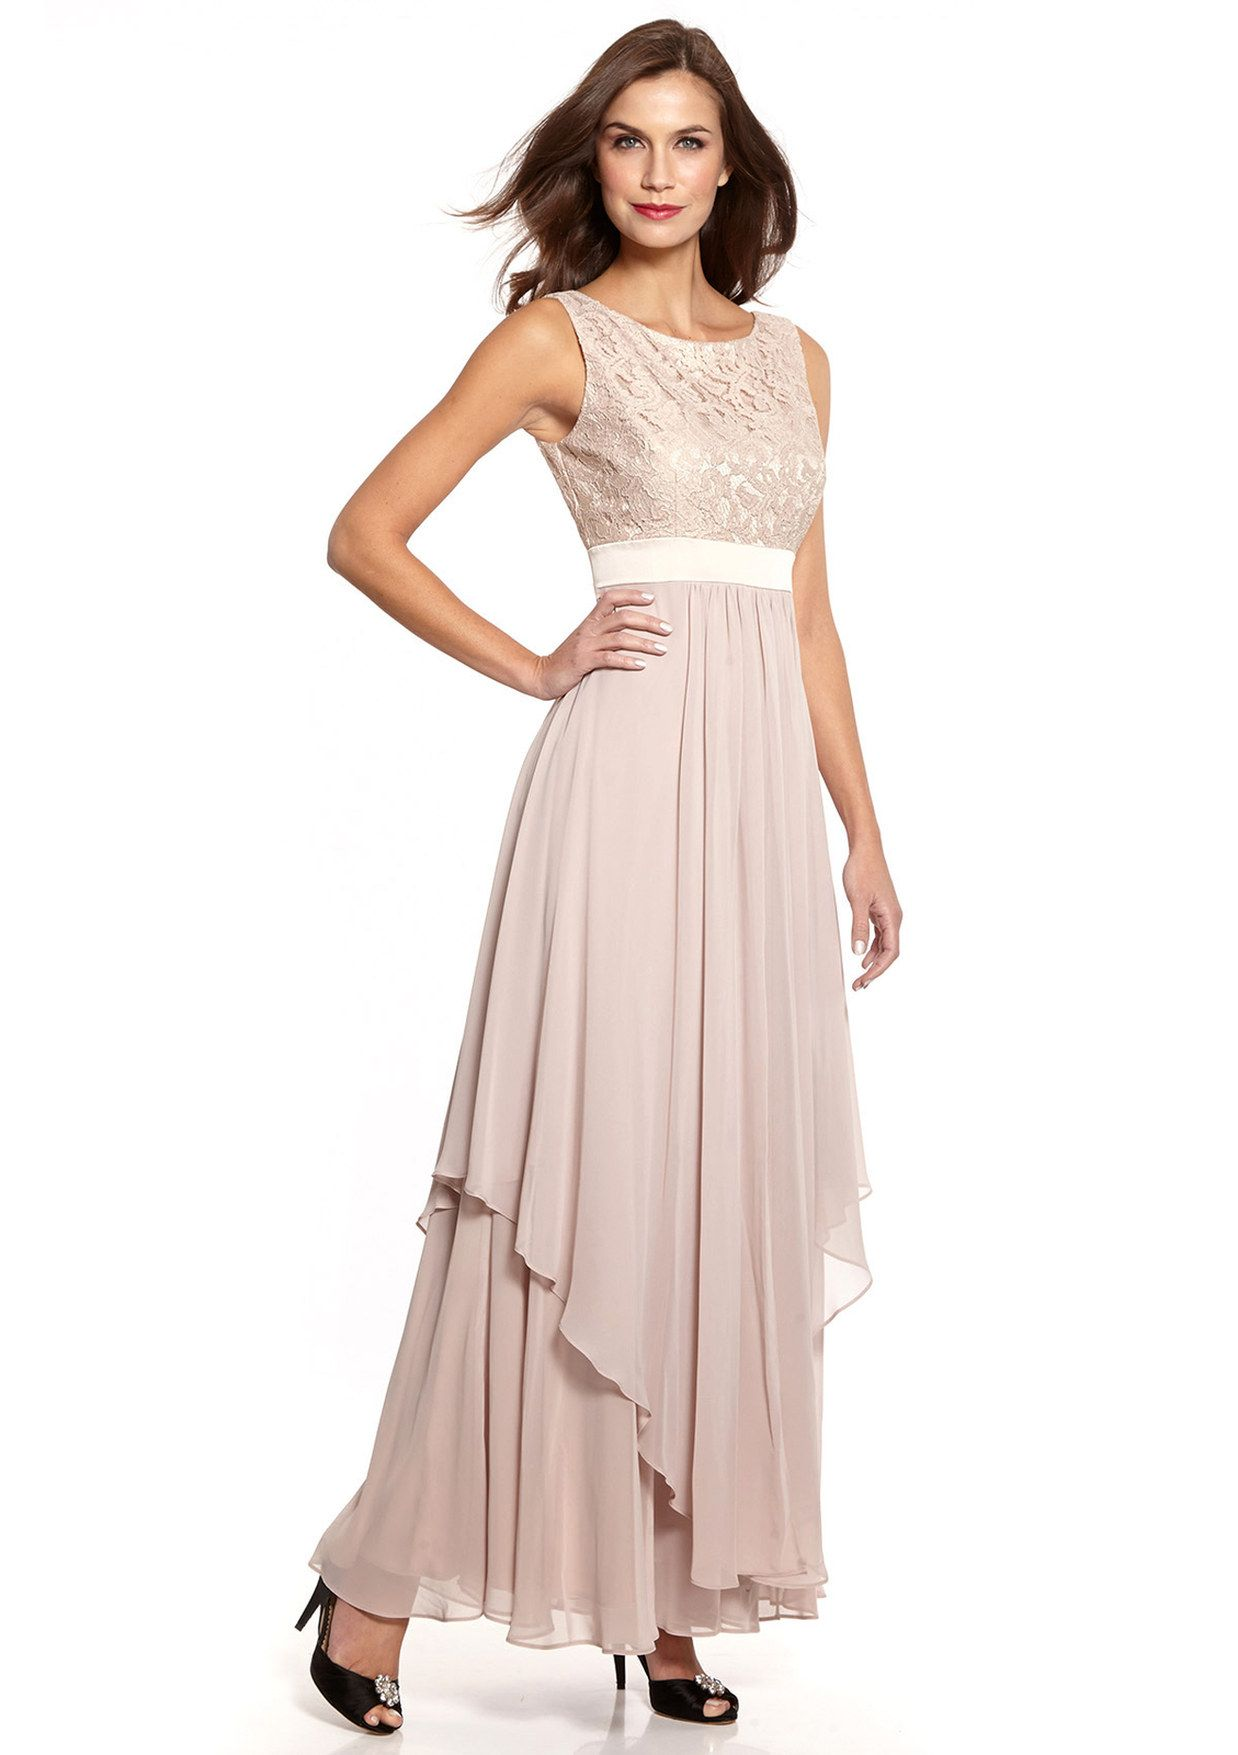 ideeli | ELIZA J Lace Bodice and Chiffon Dress $109.99 | My Style ...